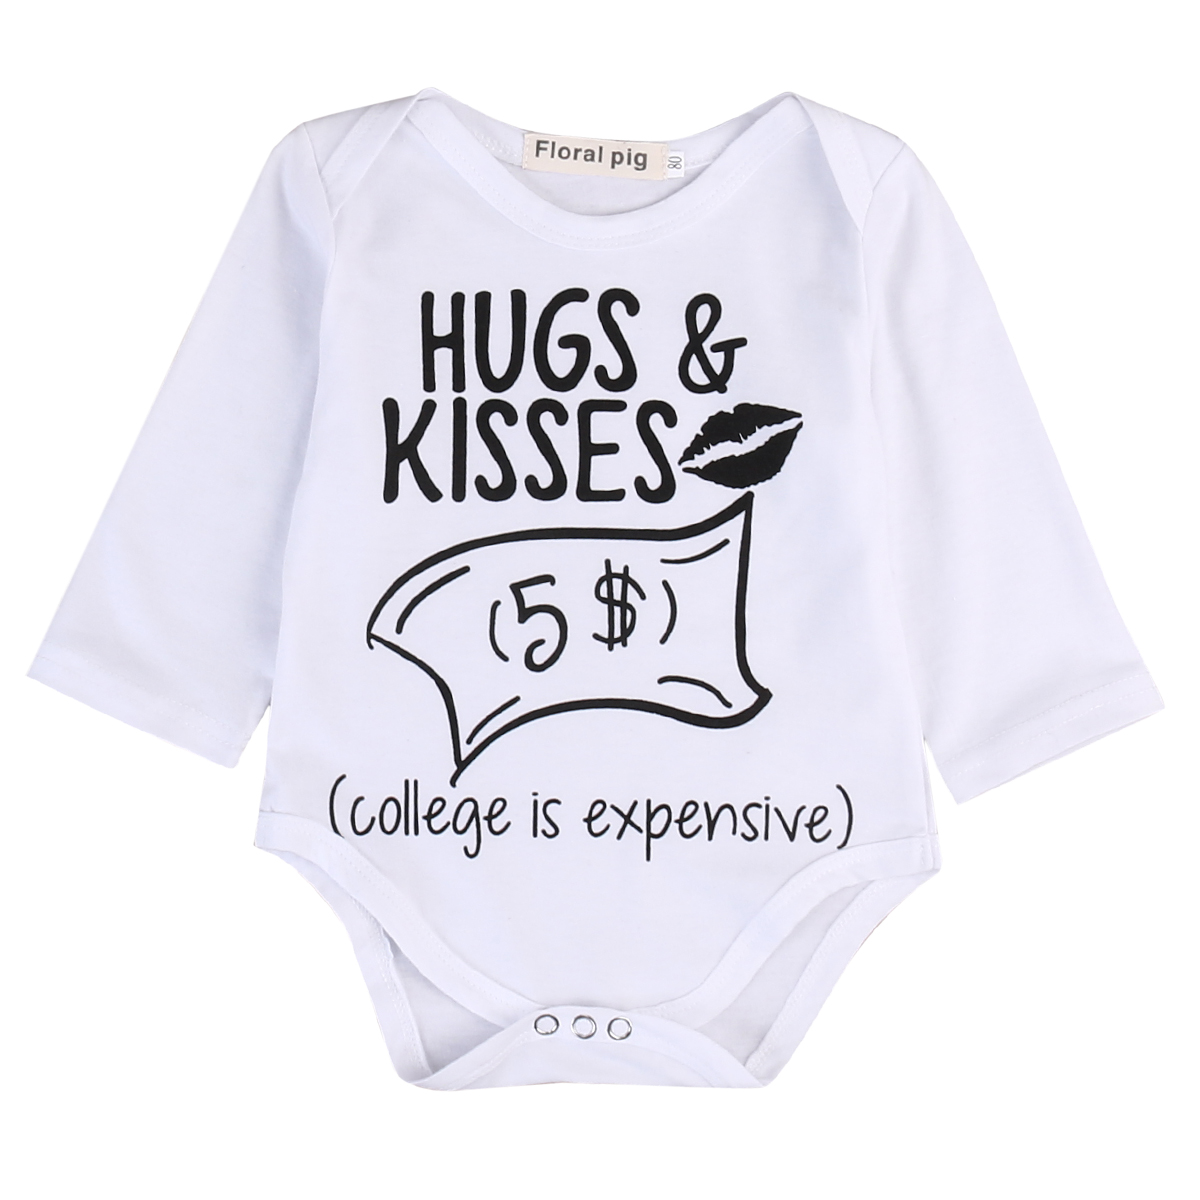 2017 New Style Newborn Baby Boy Girl Clothes Hugs Kisses Bodysuit Jumpsuit Long Sleeves Baby Clothing Outfits Set Clothes